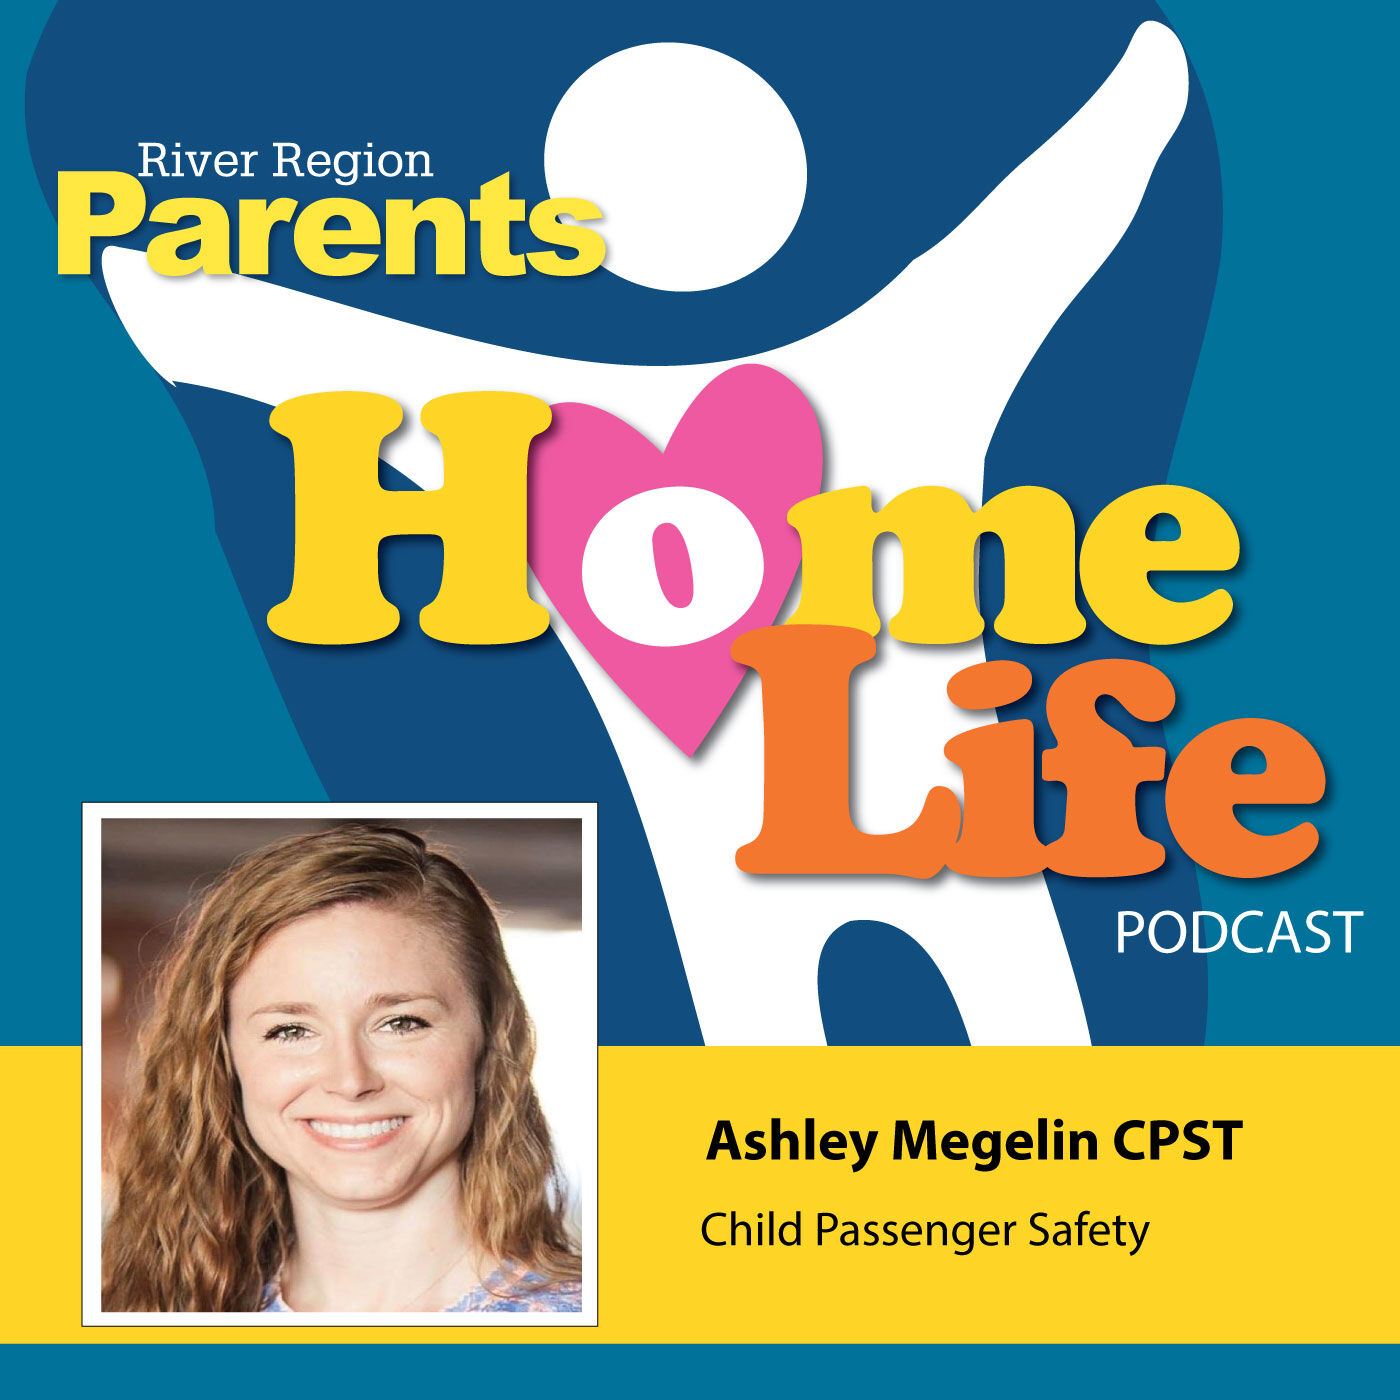 Child Passenger Safety by Ashley Megelin CPST